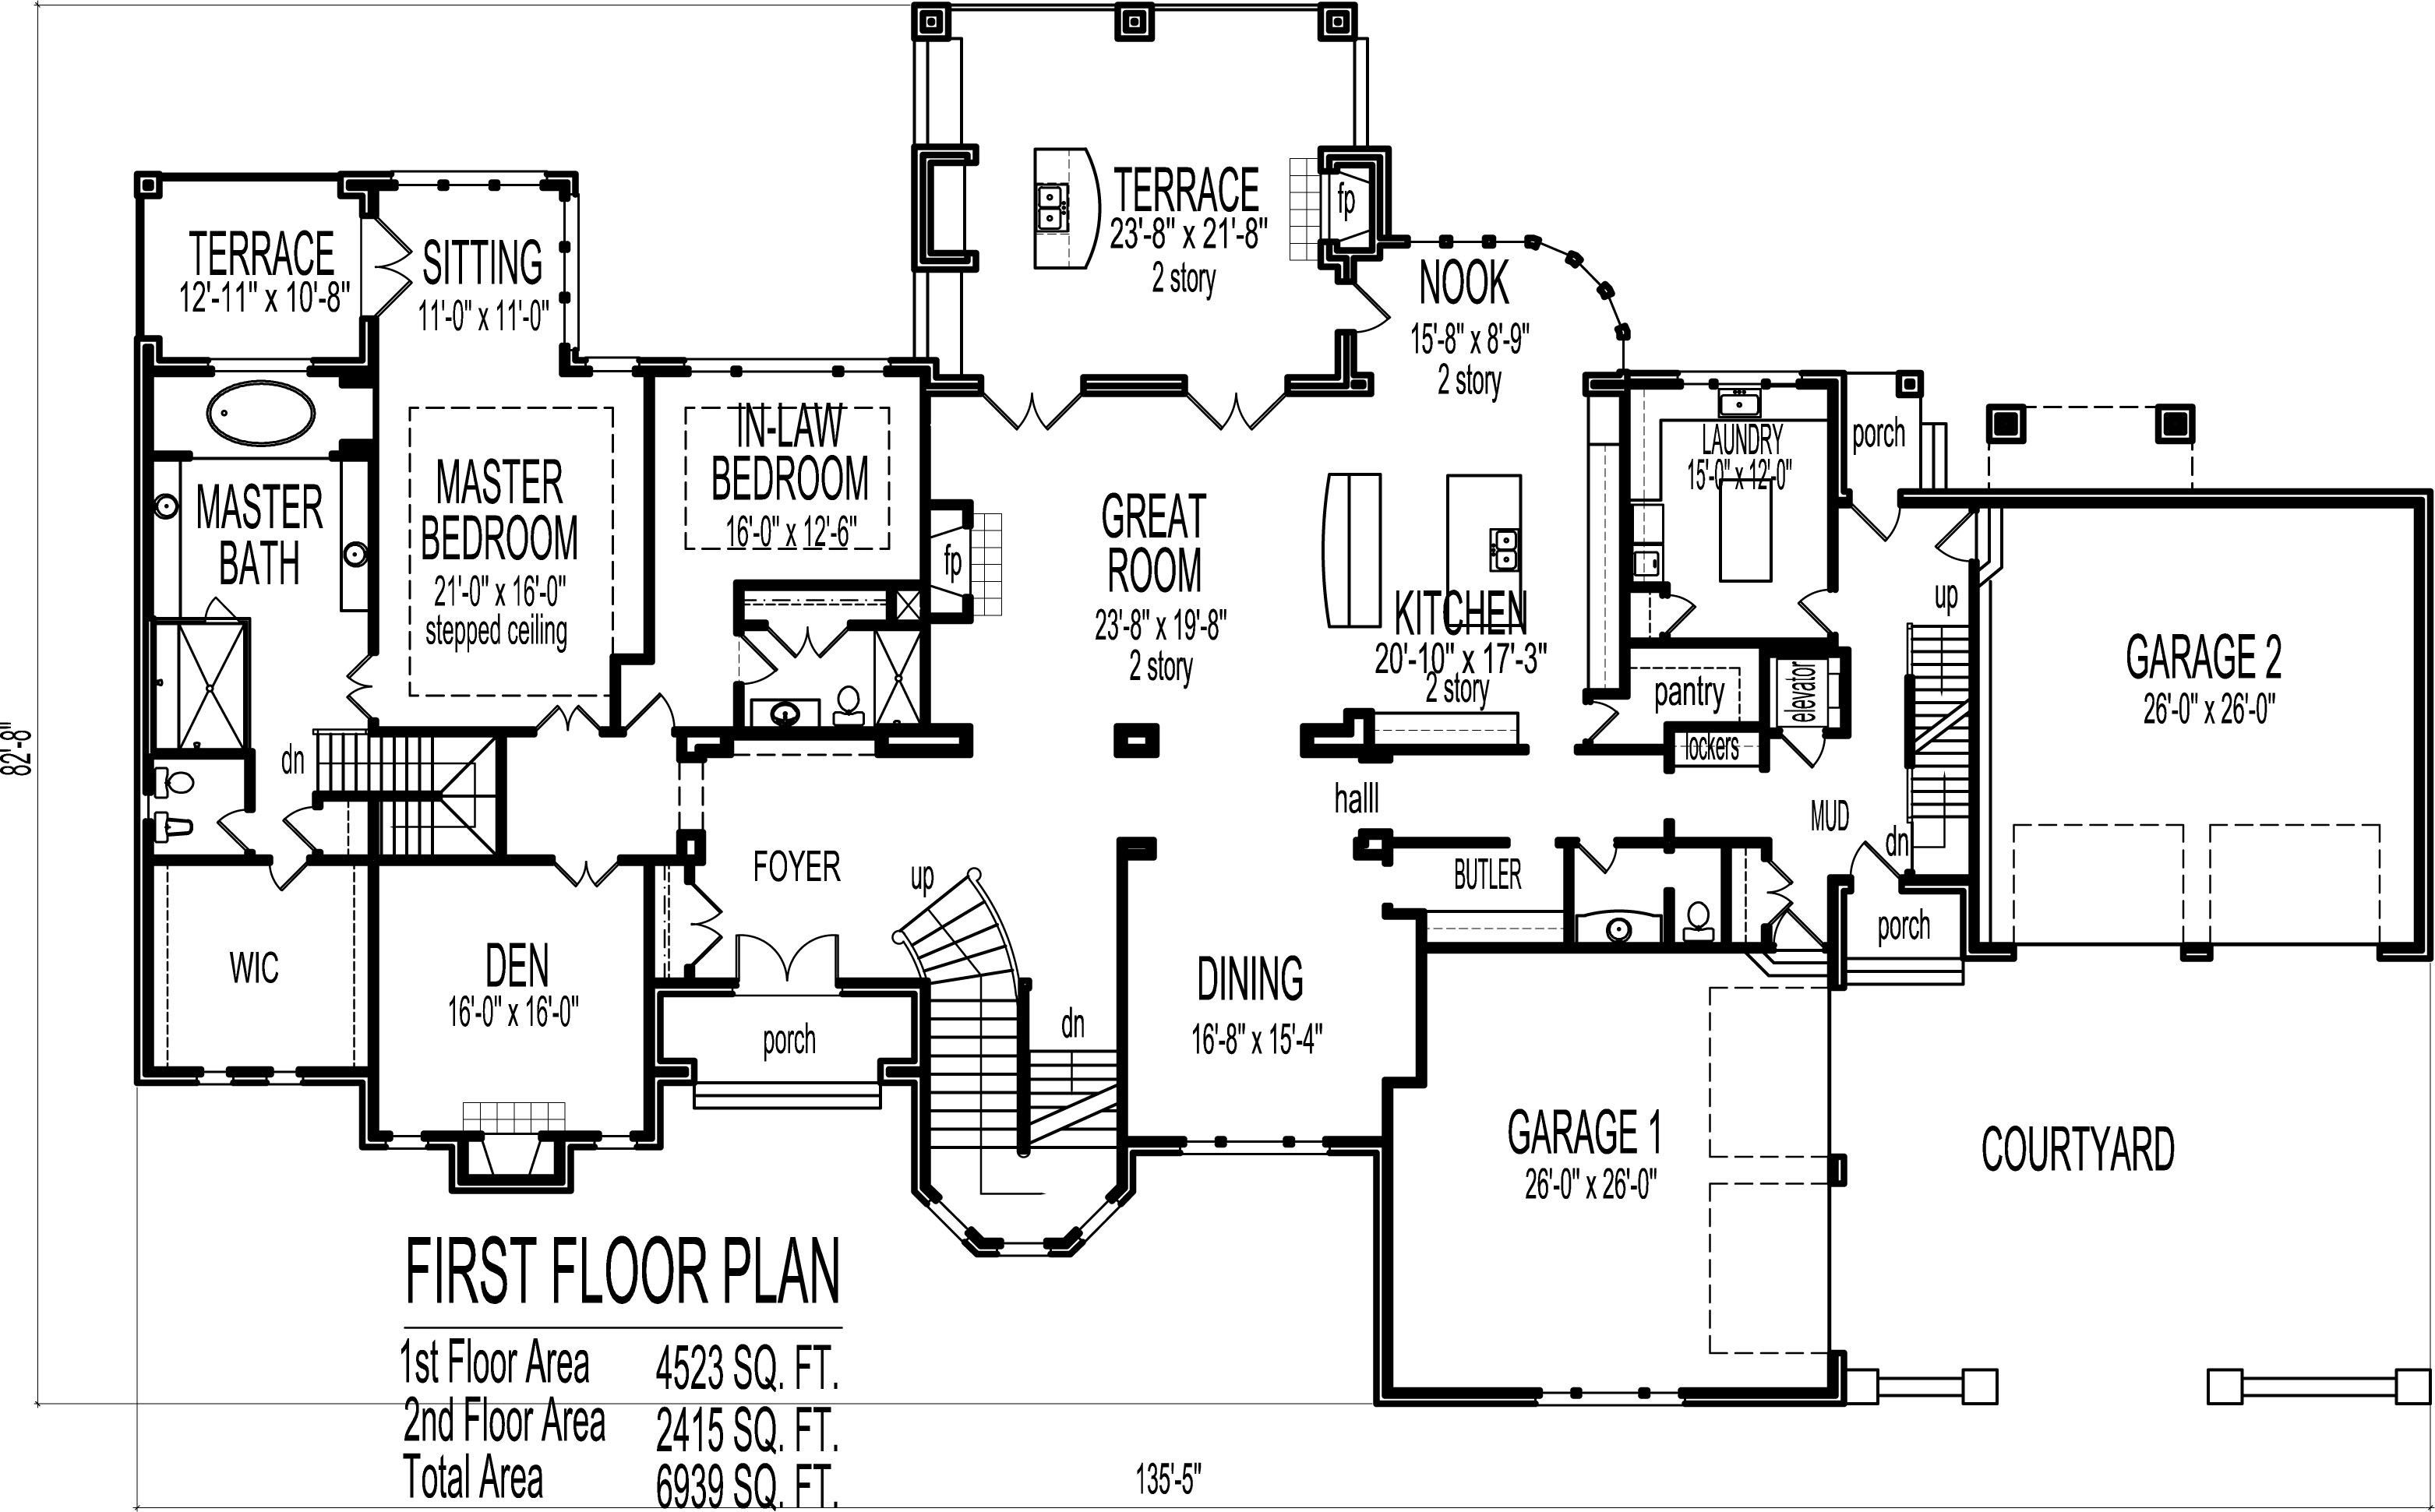 6 Bedroom 7 Bathroom Dream Home Plans Indianapolis Ft Wayne Evansville Indiana South Bend Lafayet 5 B In 2021 House Plans Mansion Luxury House Plans Mansion Floor Plan